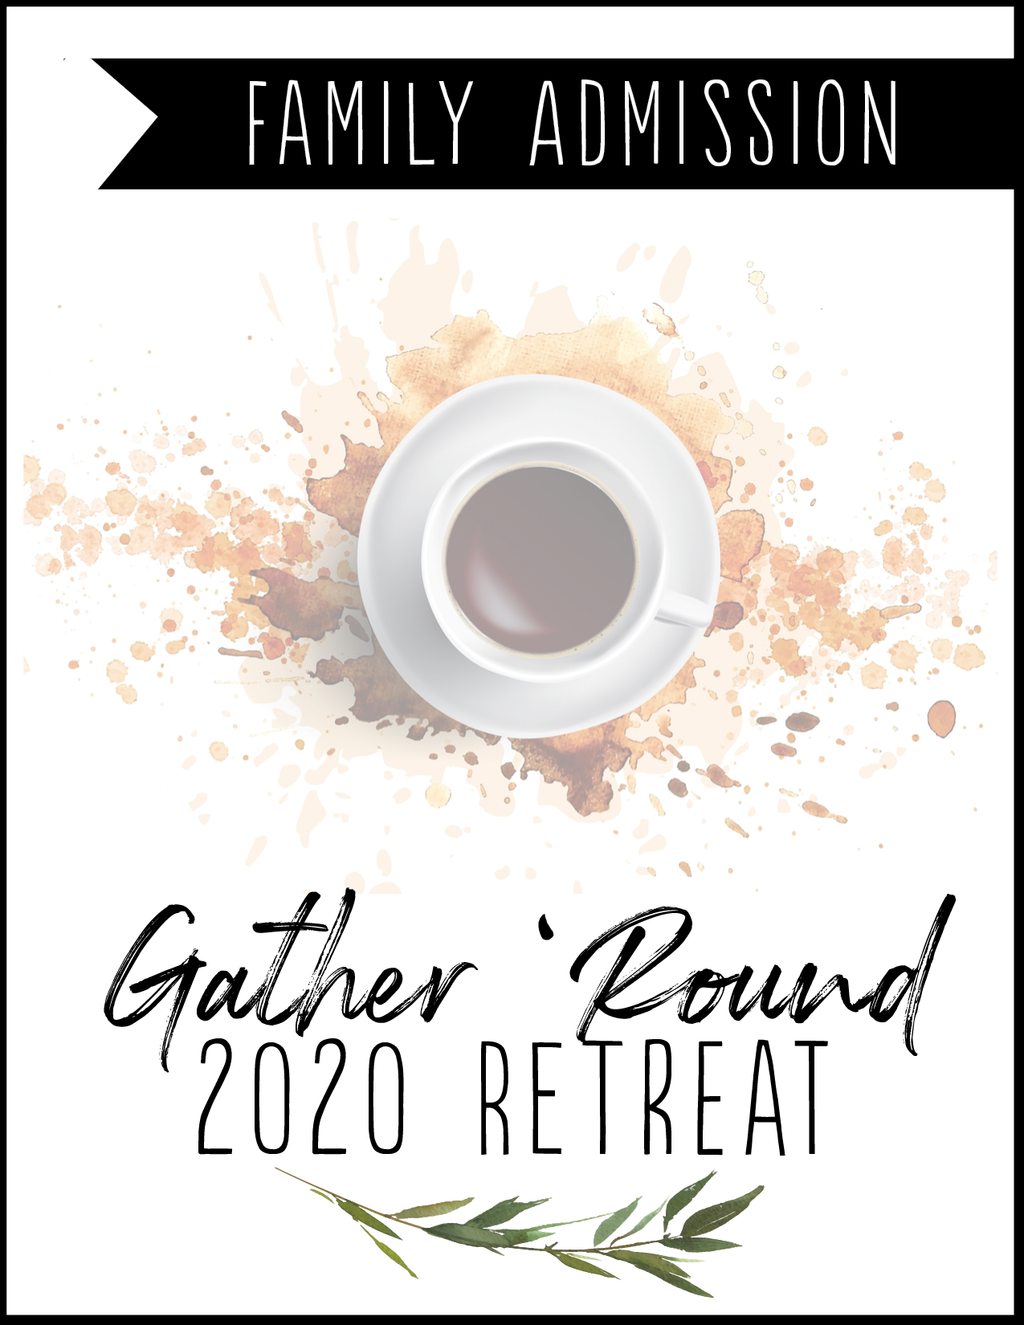 Gather 'Round Retreat Family Admission